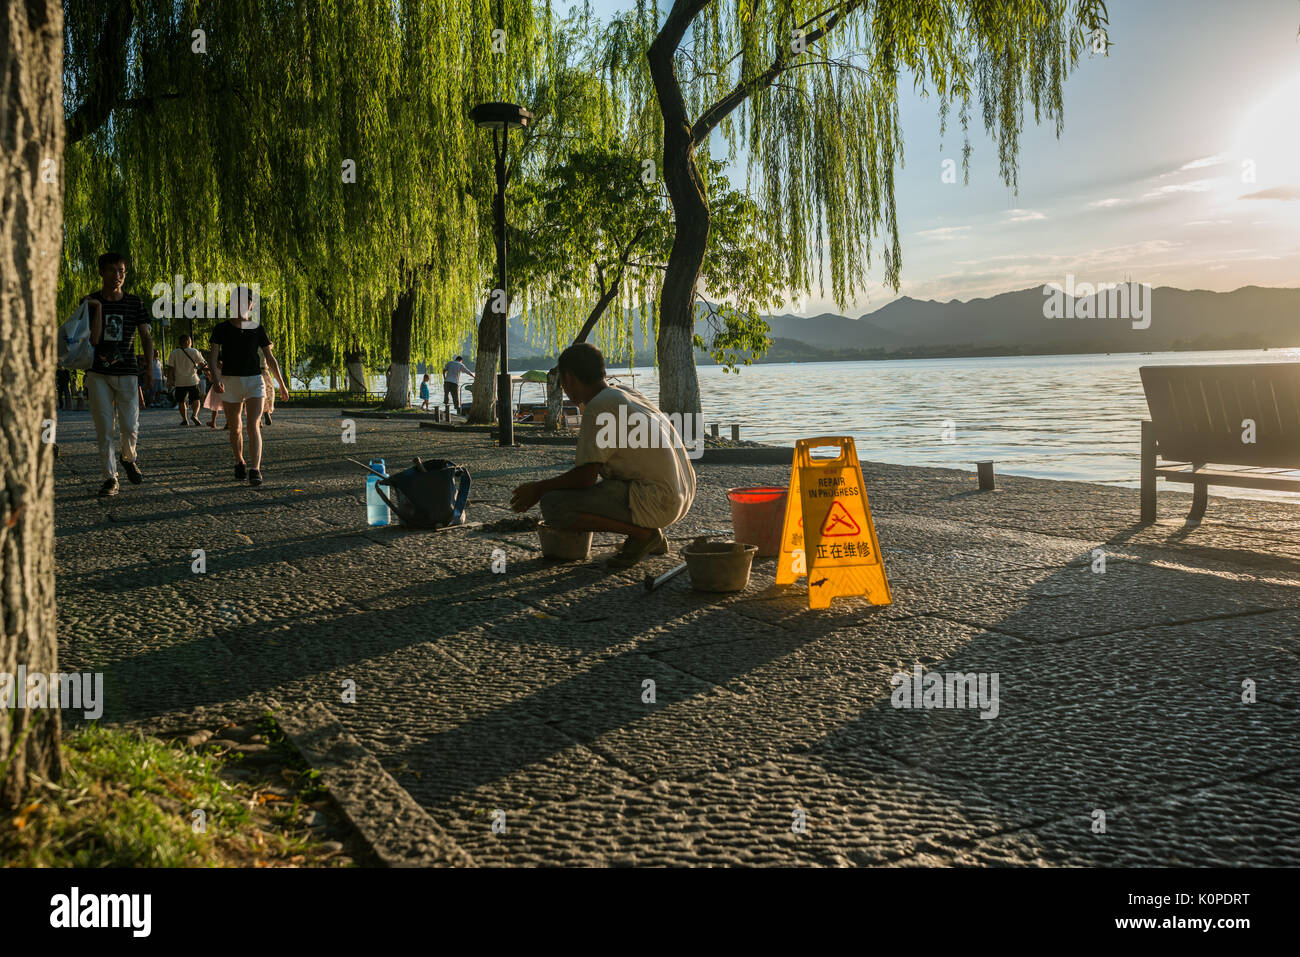 Chinese manual worker repairing the stone path, sidewalk in early evening - Stock Image